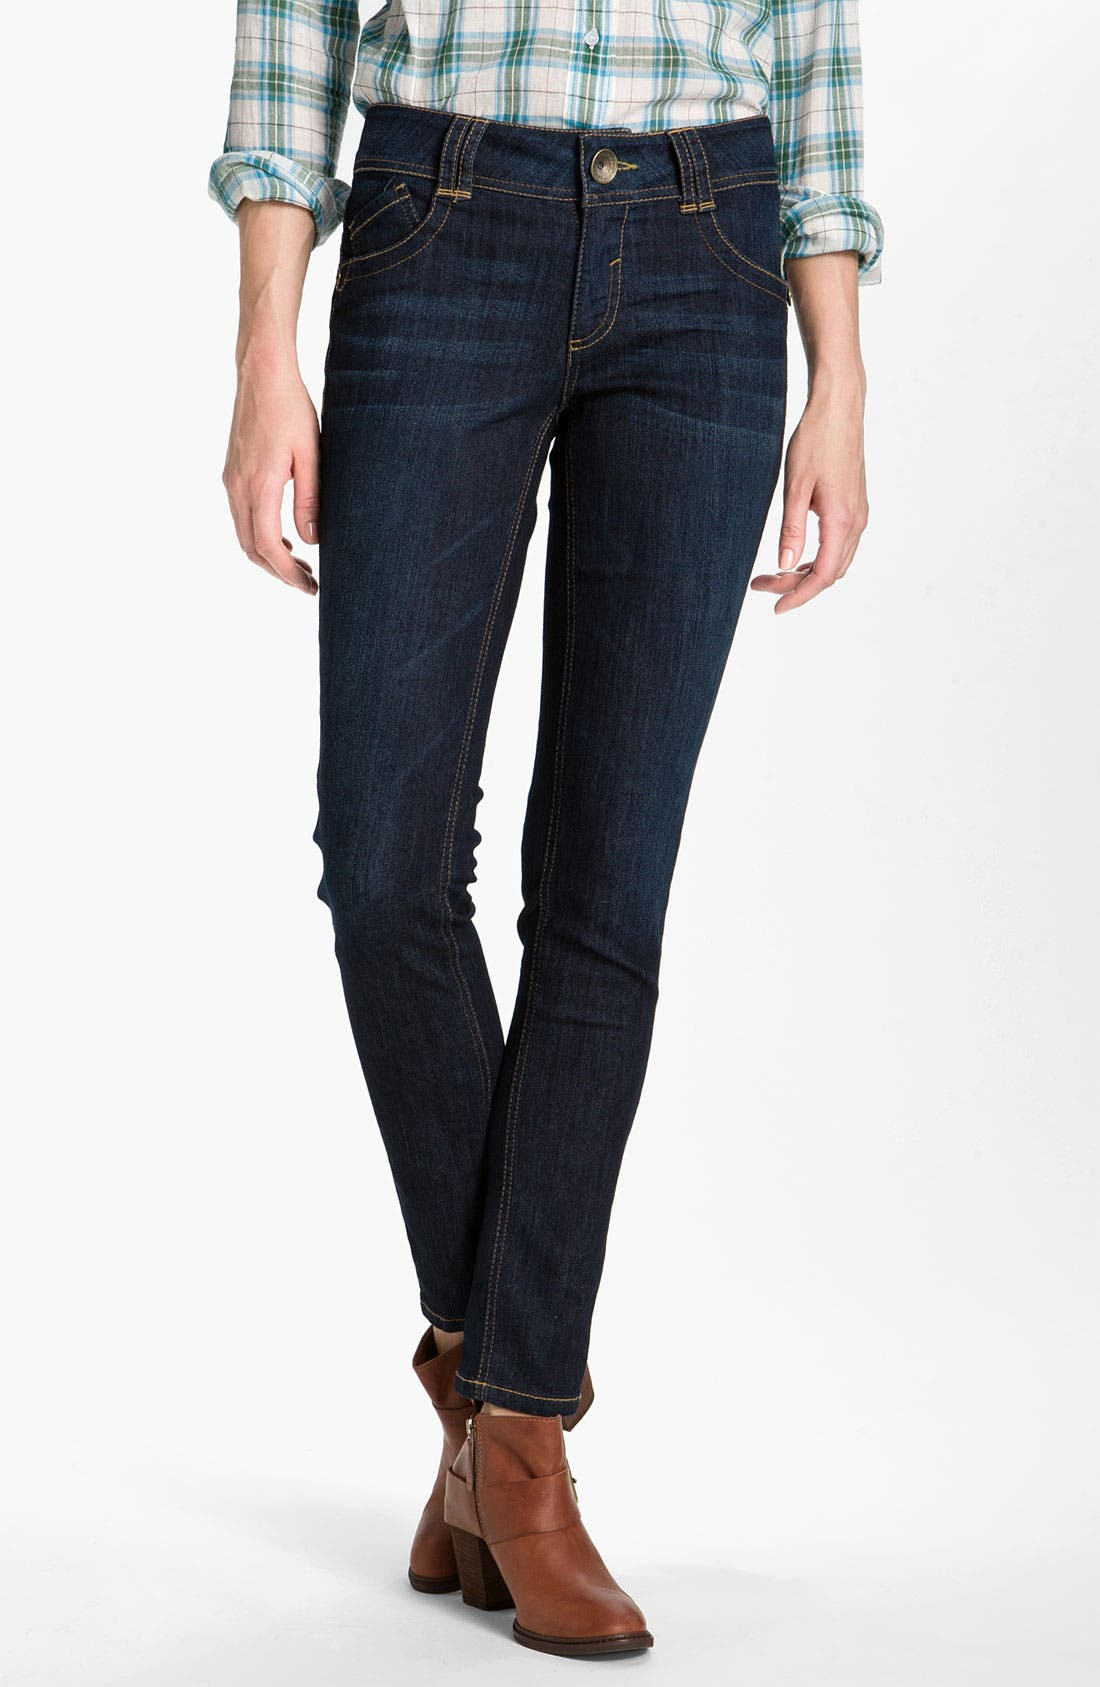 Alternate Image 1 Selected - Wit & Wisdom Denim Leggings (Indigo Wash) (Nordstrom Exclusive)